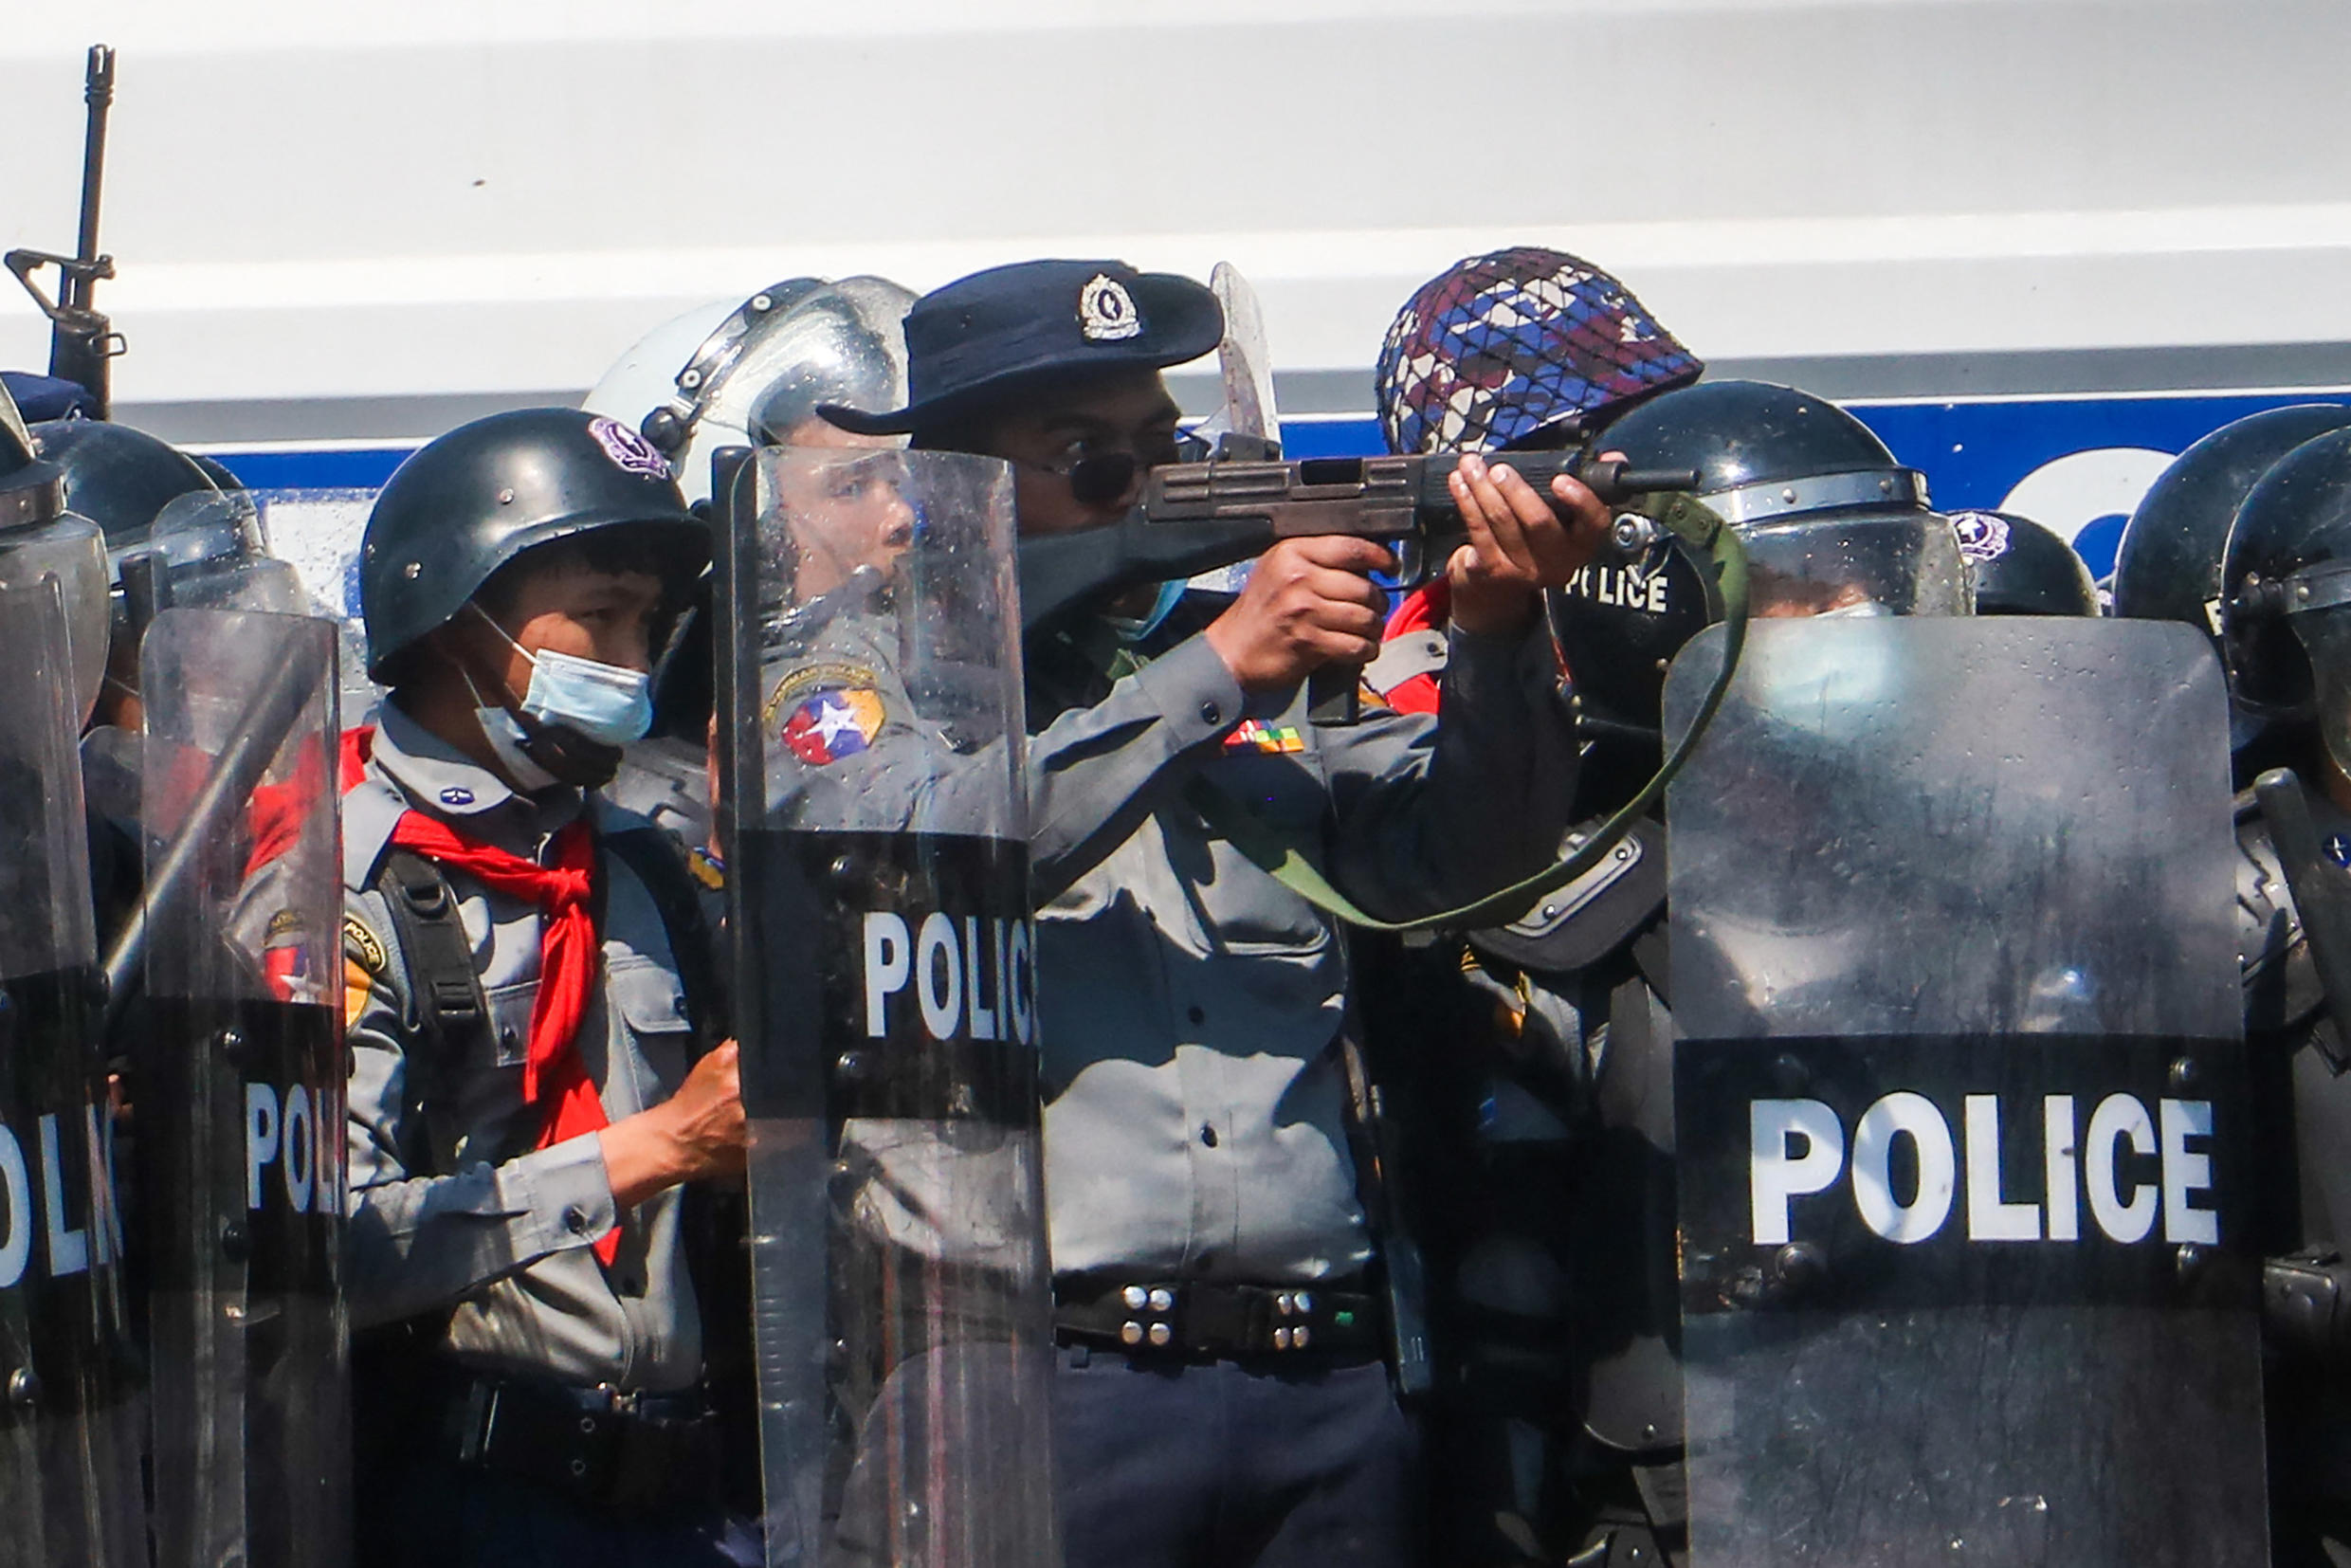 A police officer raises his weapon as if to fire in Naypyidaw on February 9, 2021, around 1pm.